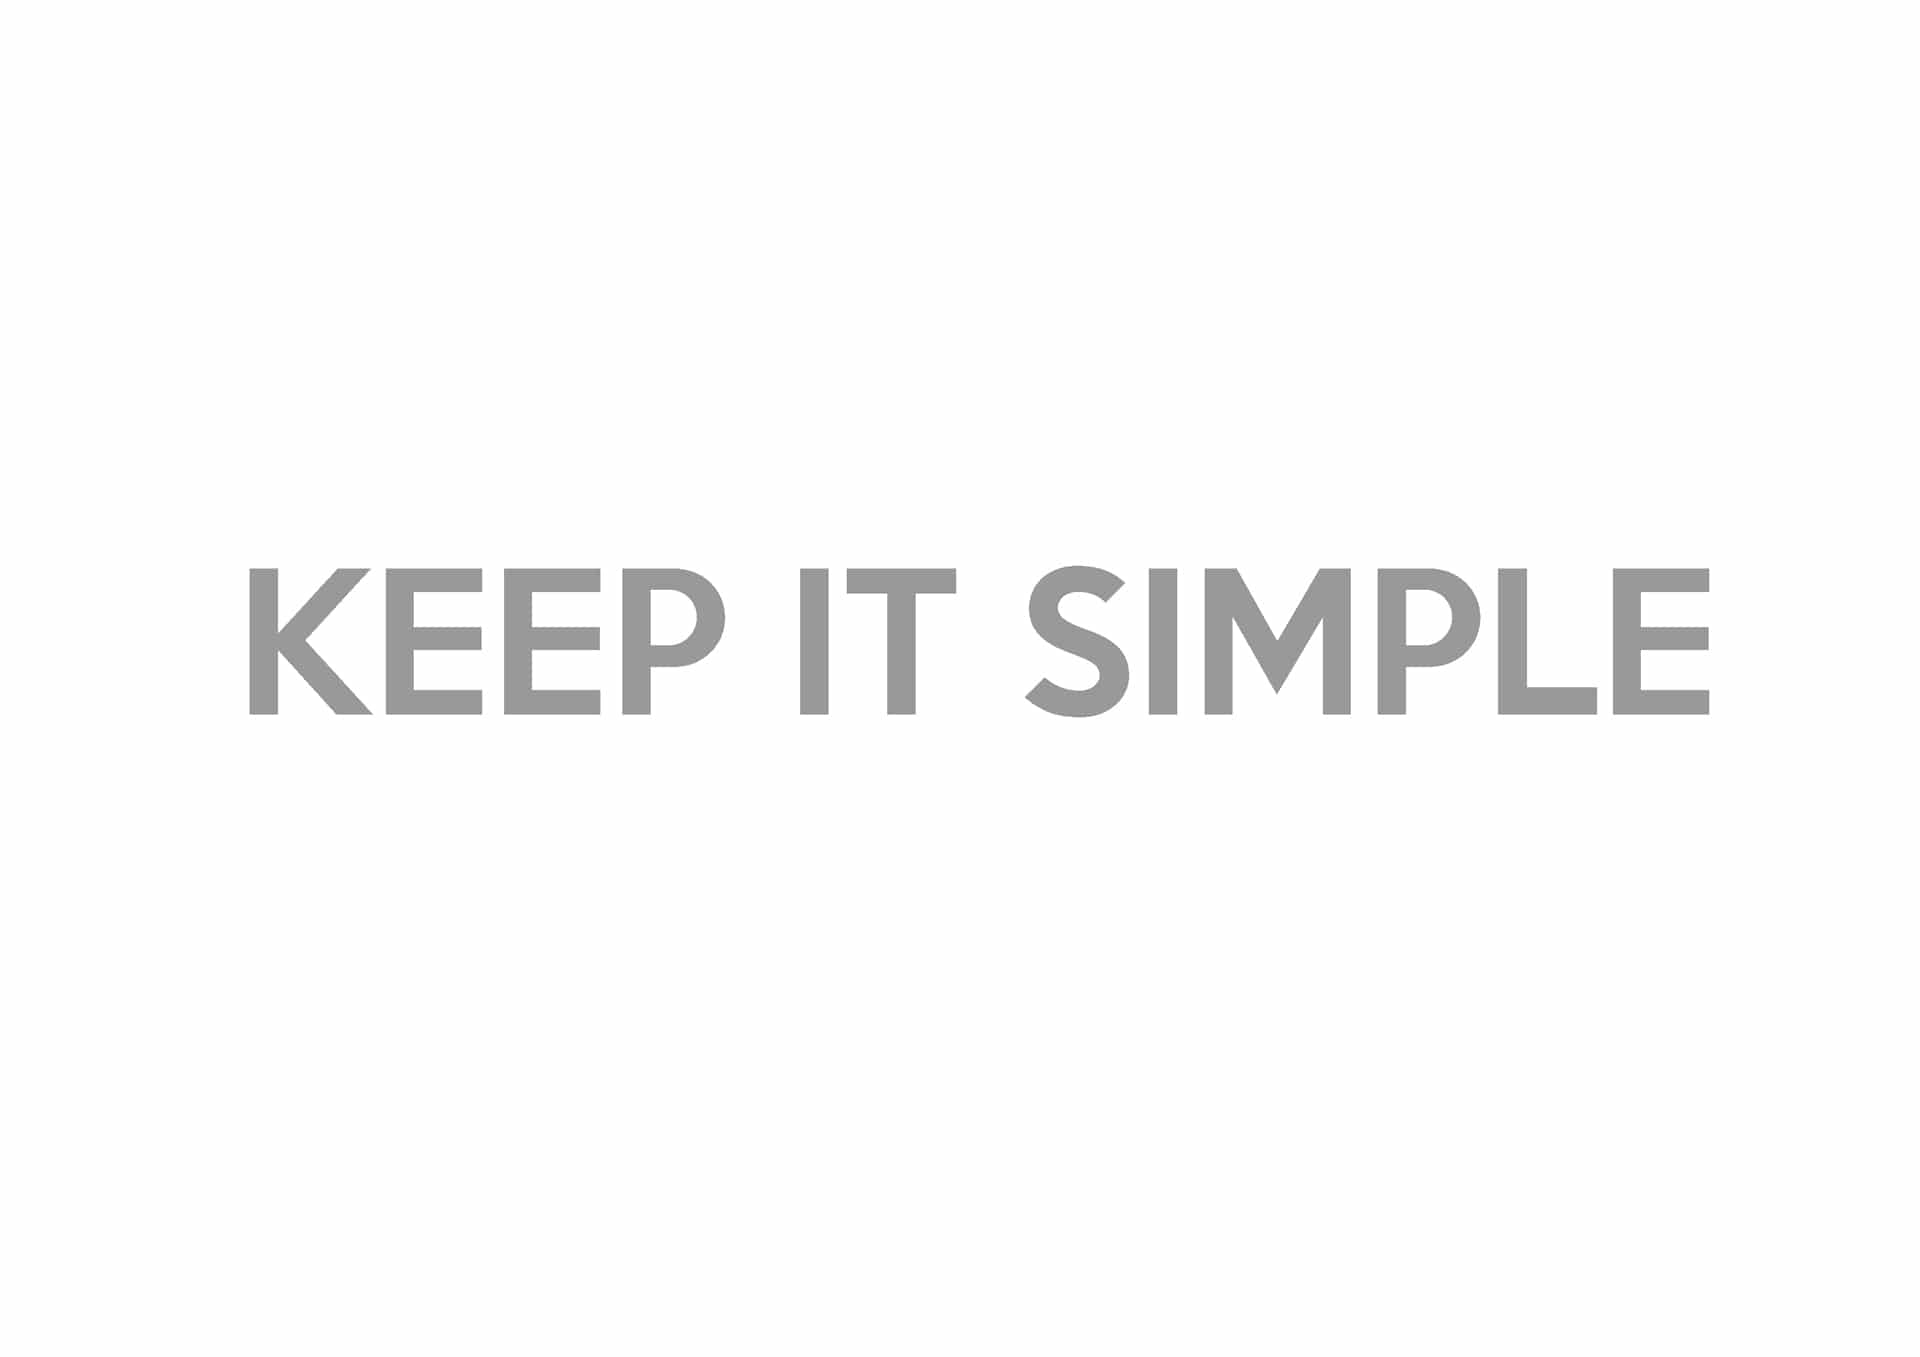 christians lets keep it simple